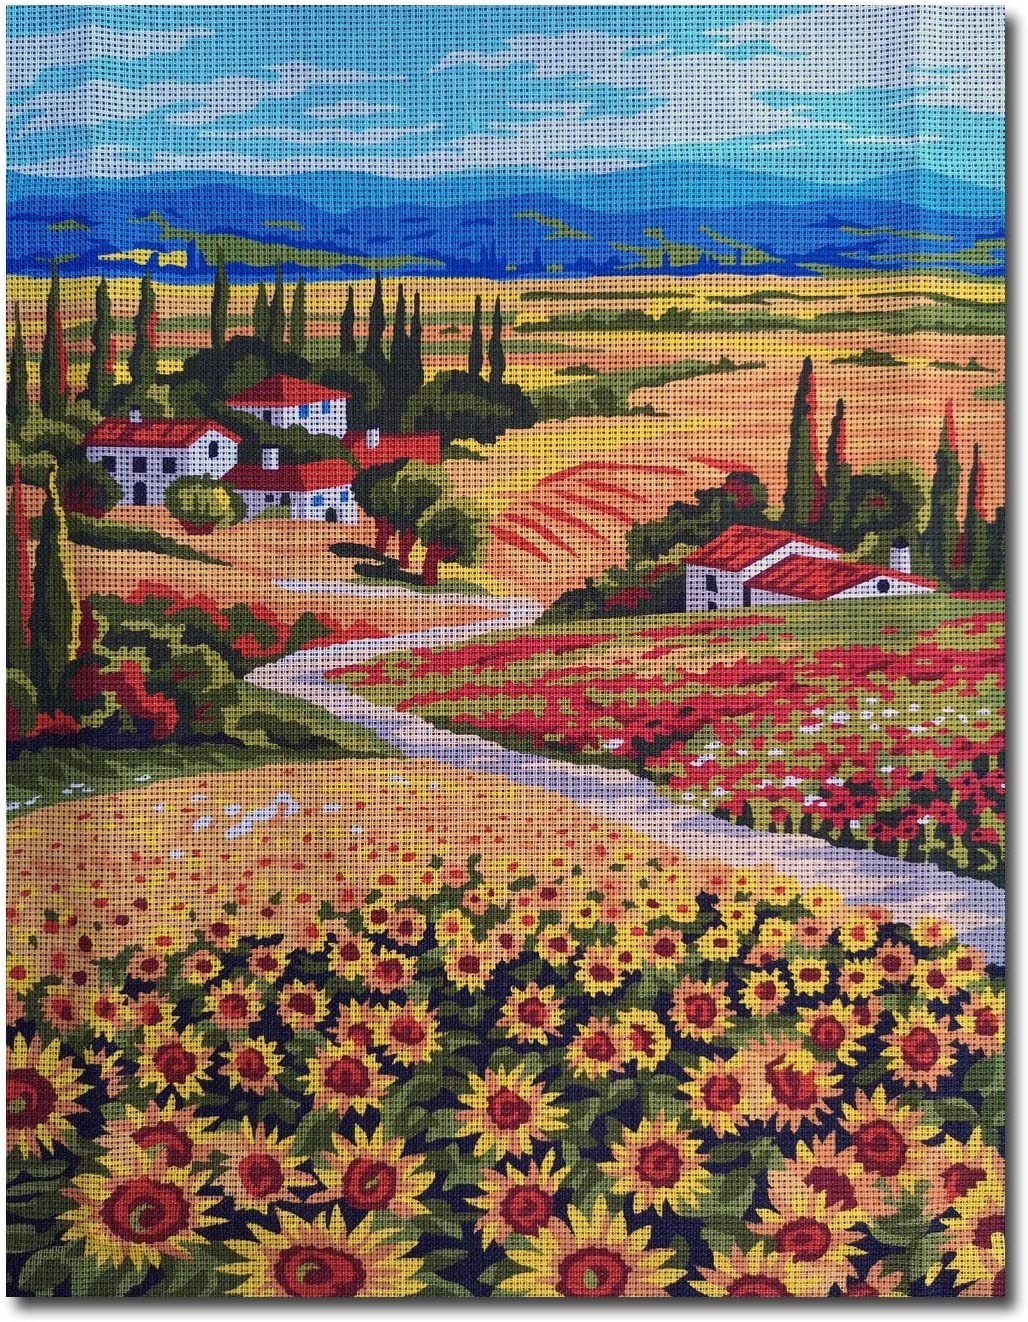 Krainer Needlepoint Kit Tuscany Landscape Made in Italy 19x15in 49x38cm Printed Canvas cod K98